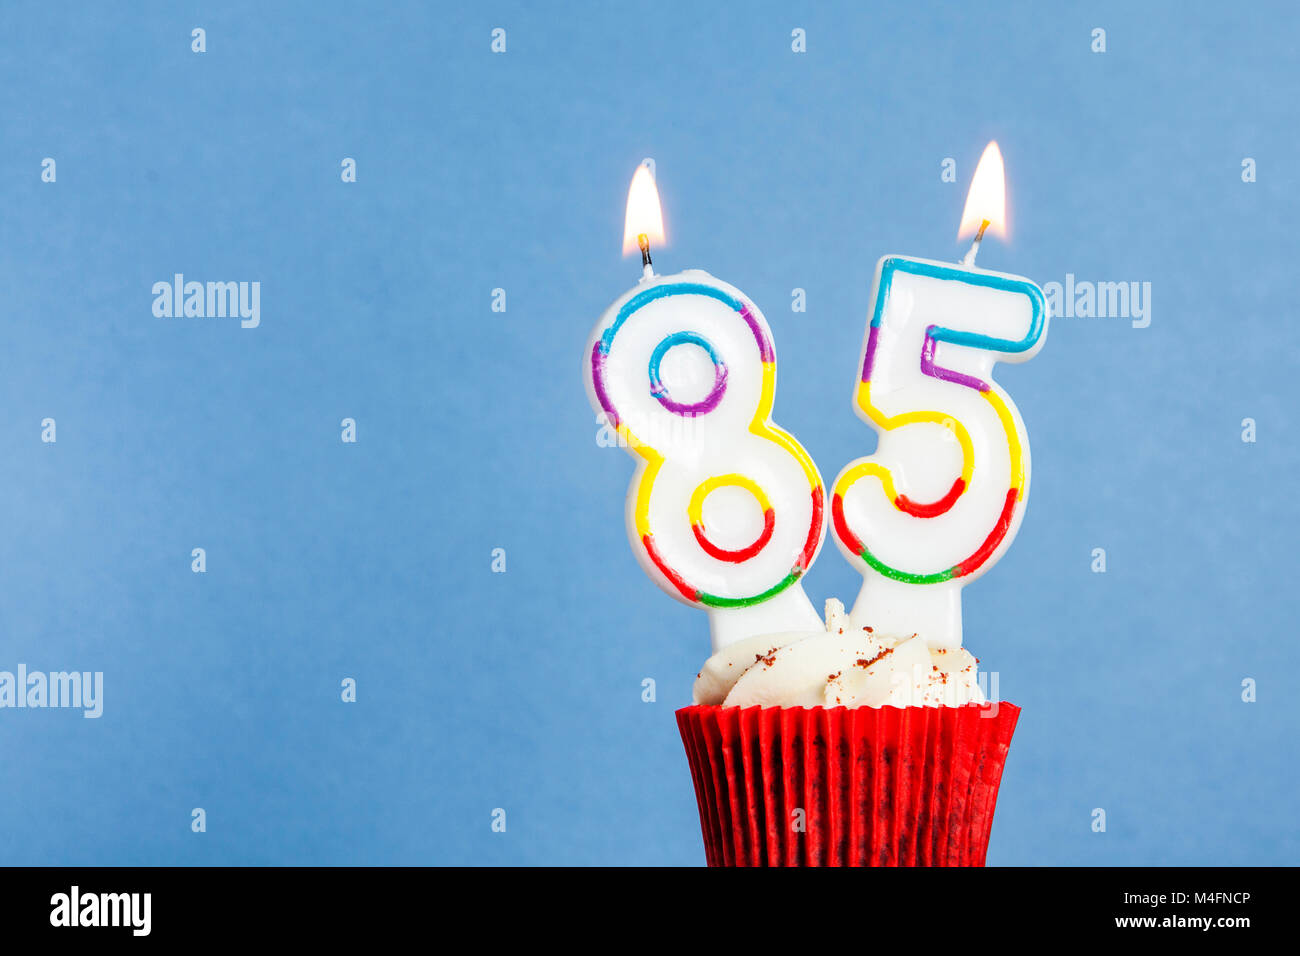 Number 85 Birthday Candle In A Cupcake Against Blue Background